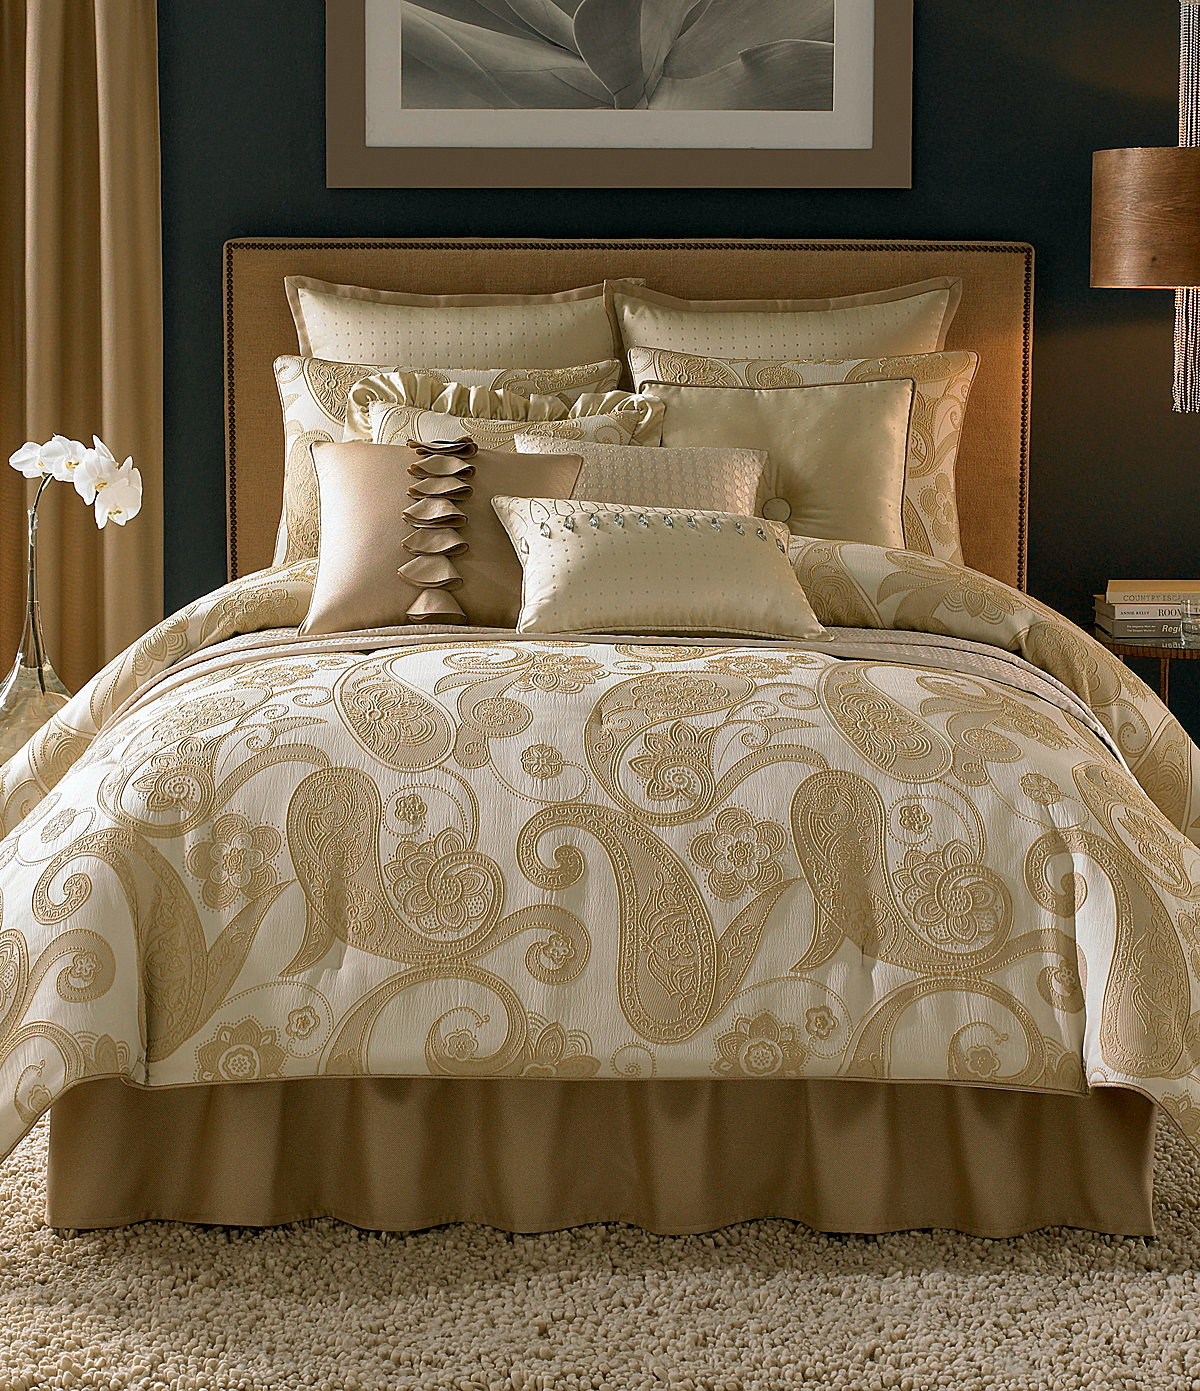 Modern furniture 2013 candice olson bedding collection - Bedroom sheets and comforter sets ...